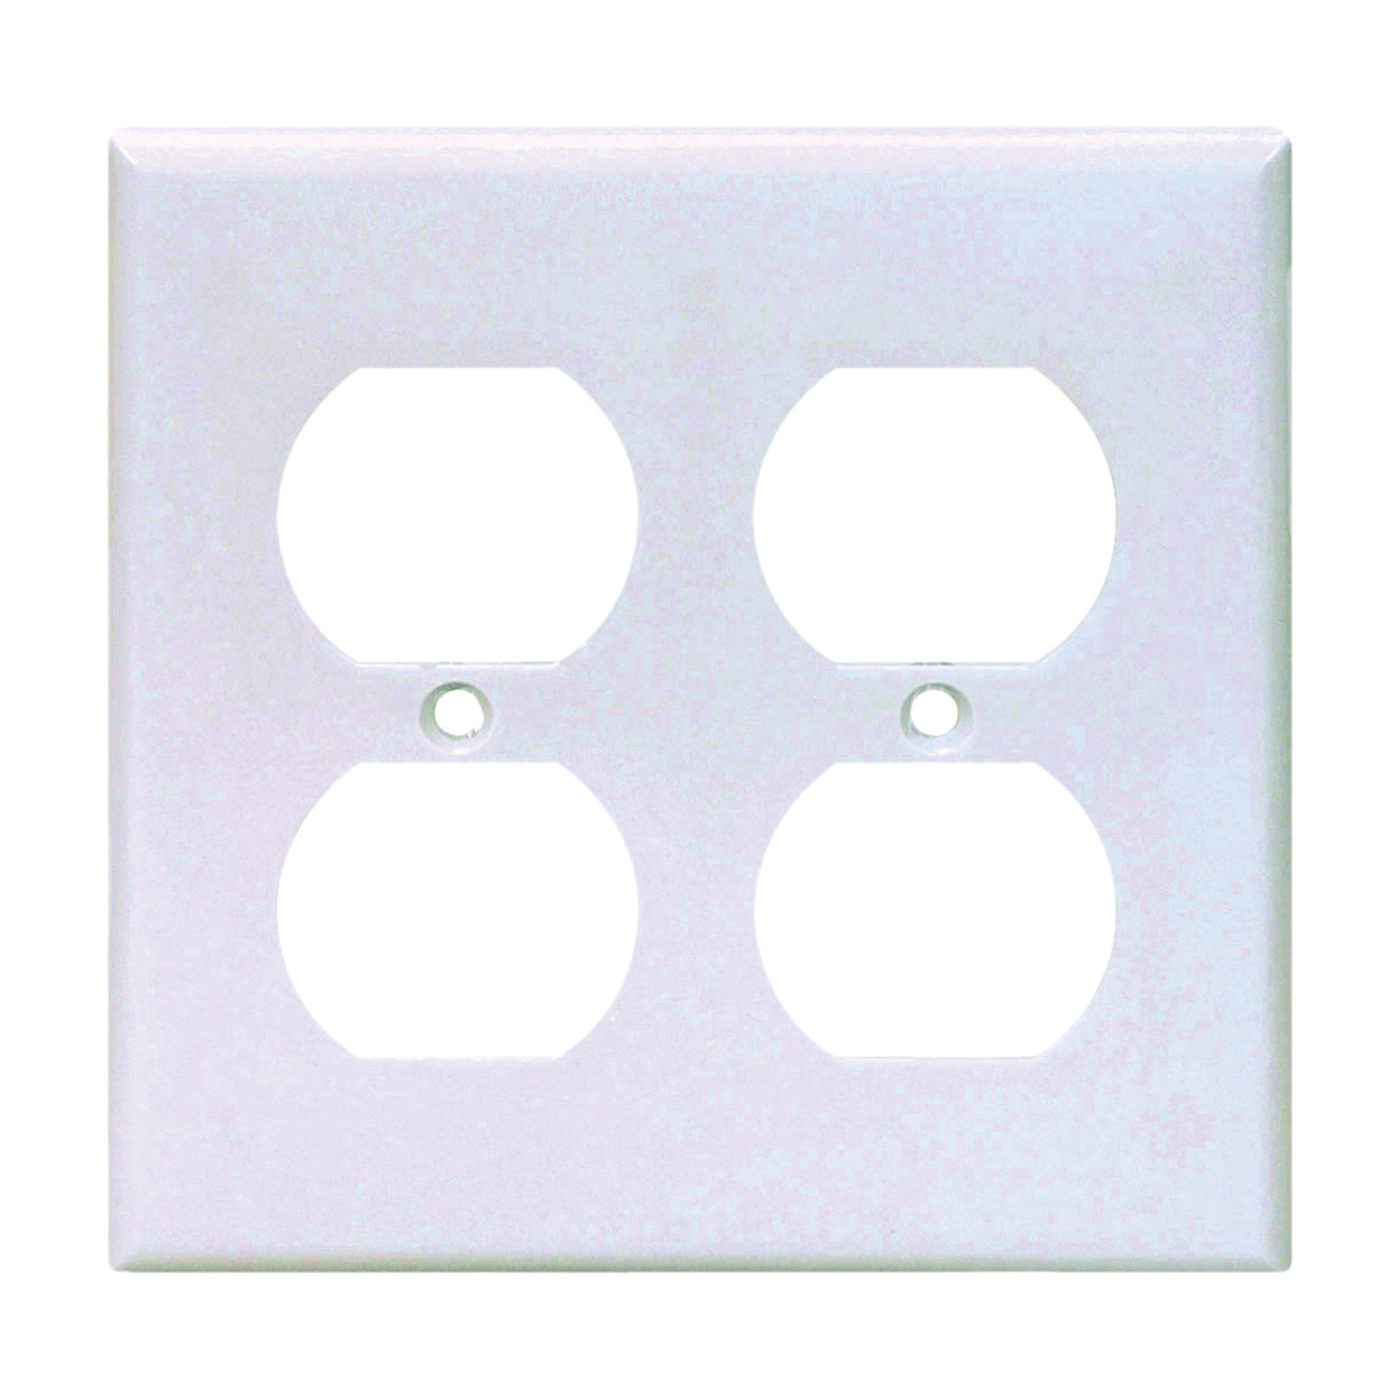 Picture of Eaton Wiring Devices 2150W-BOX Duplex Receptacle Wallplate, 4-1/2 in L, 4-9/16 in W, 2-Gang, Thermoset, White